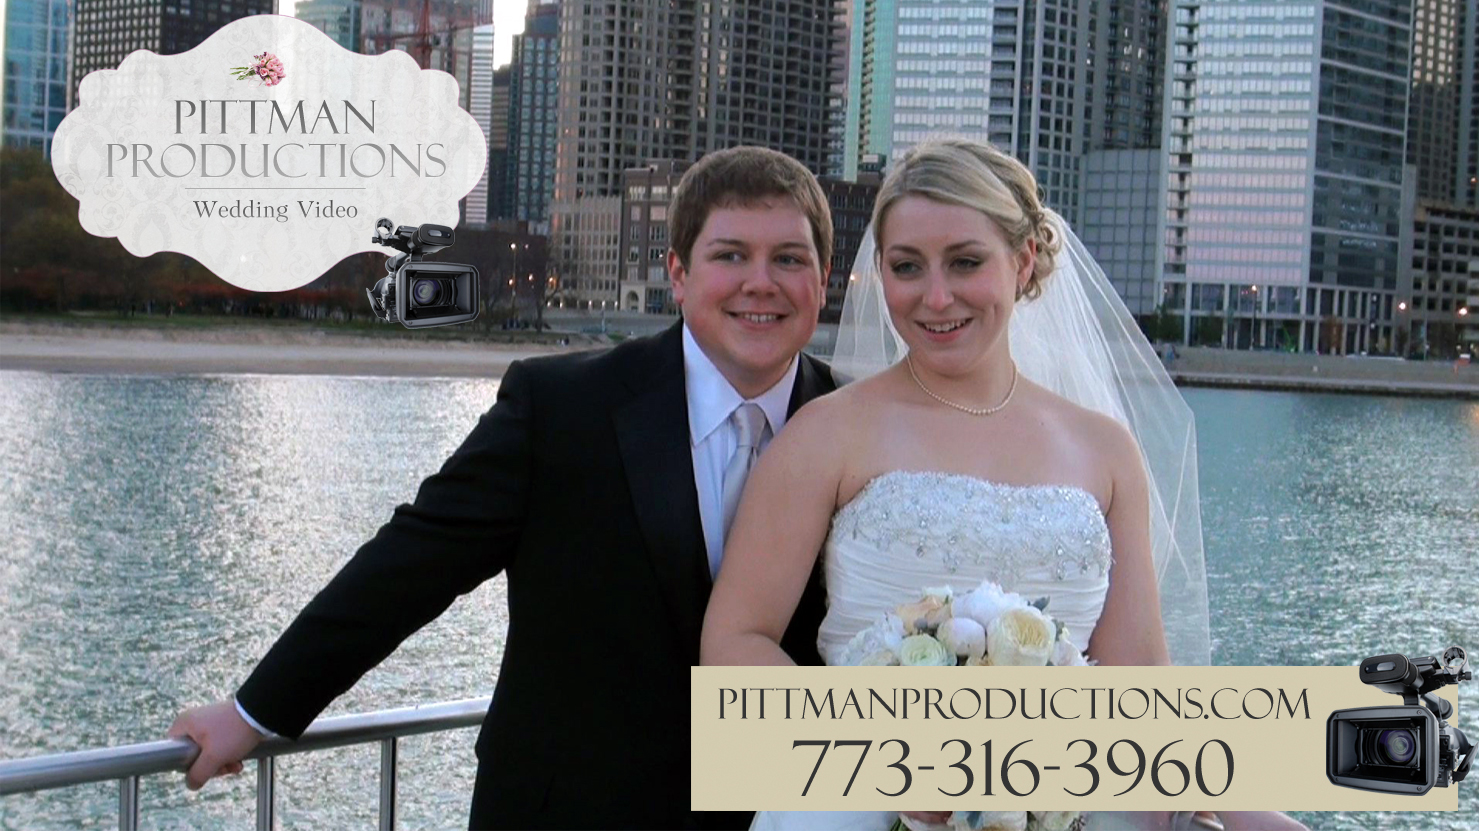 Pittman_productions-wedding-downtown-chicago-il.original.original